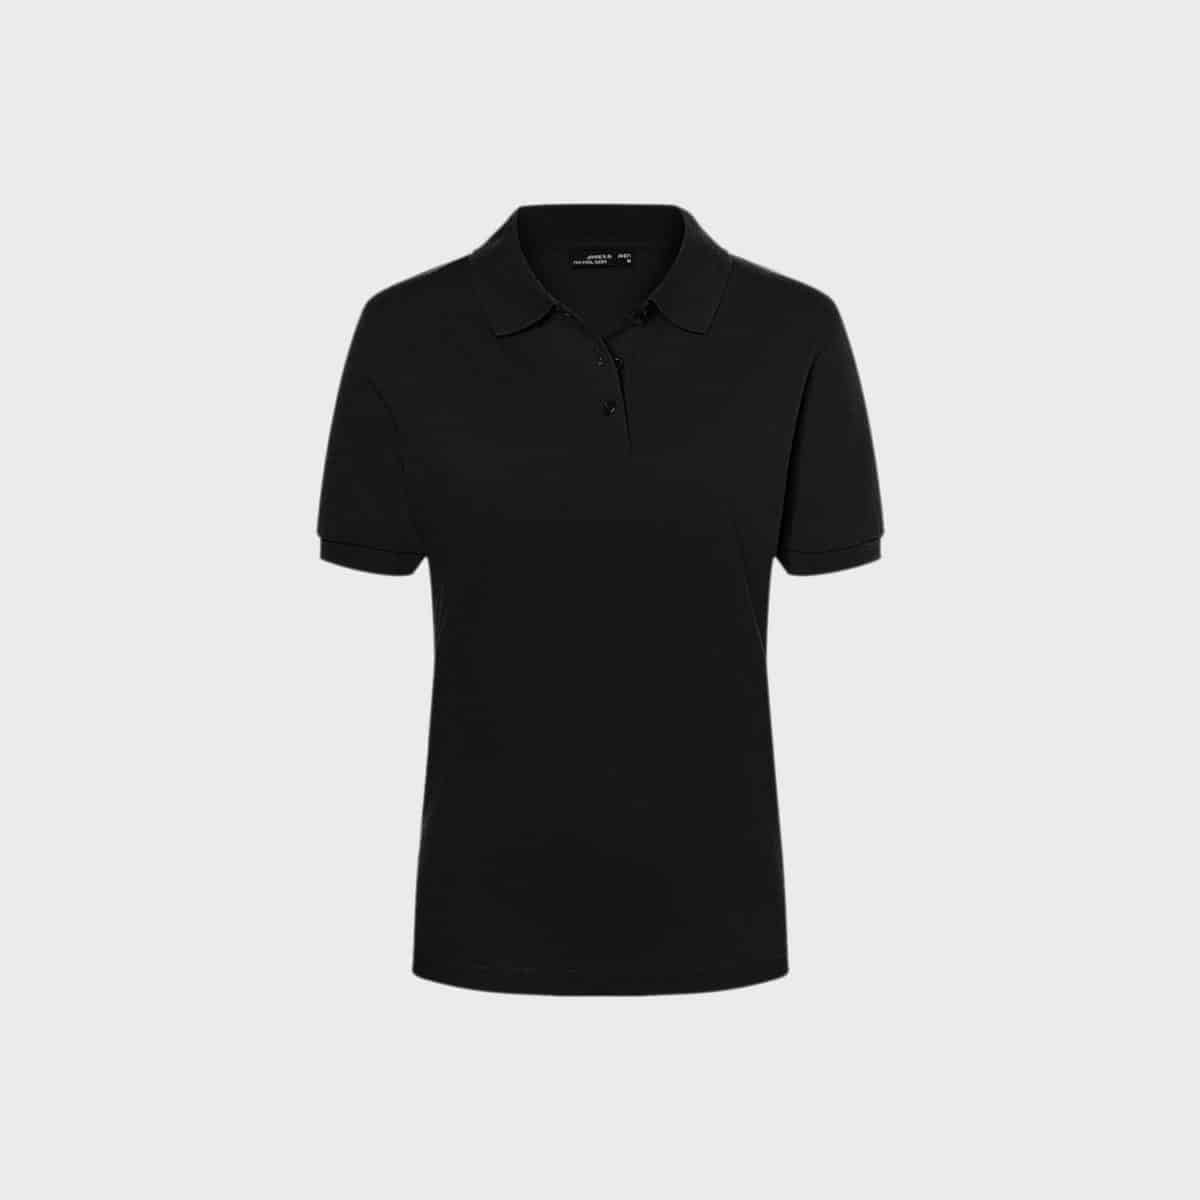 polo-shirt-damen-clasic-kaufen-besticken_stickmanufaktur